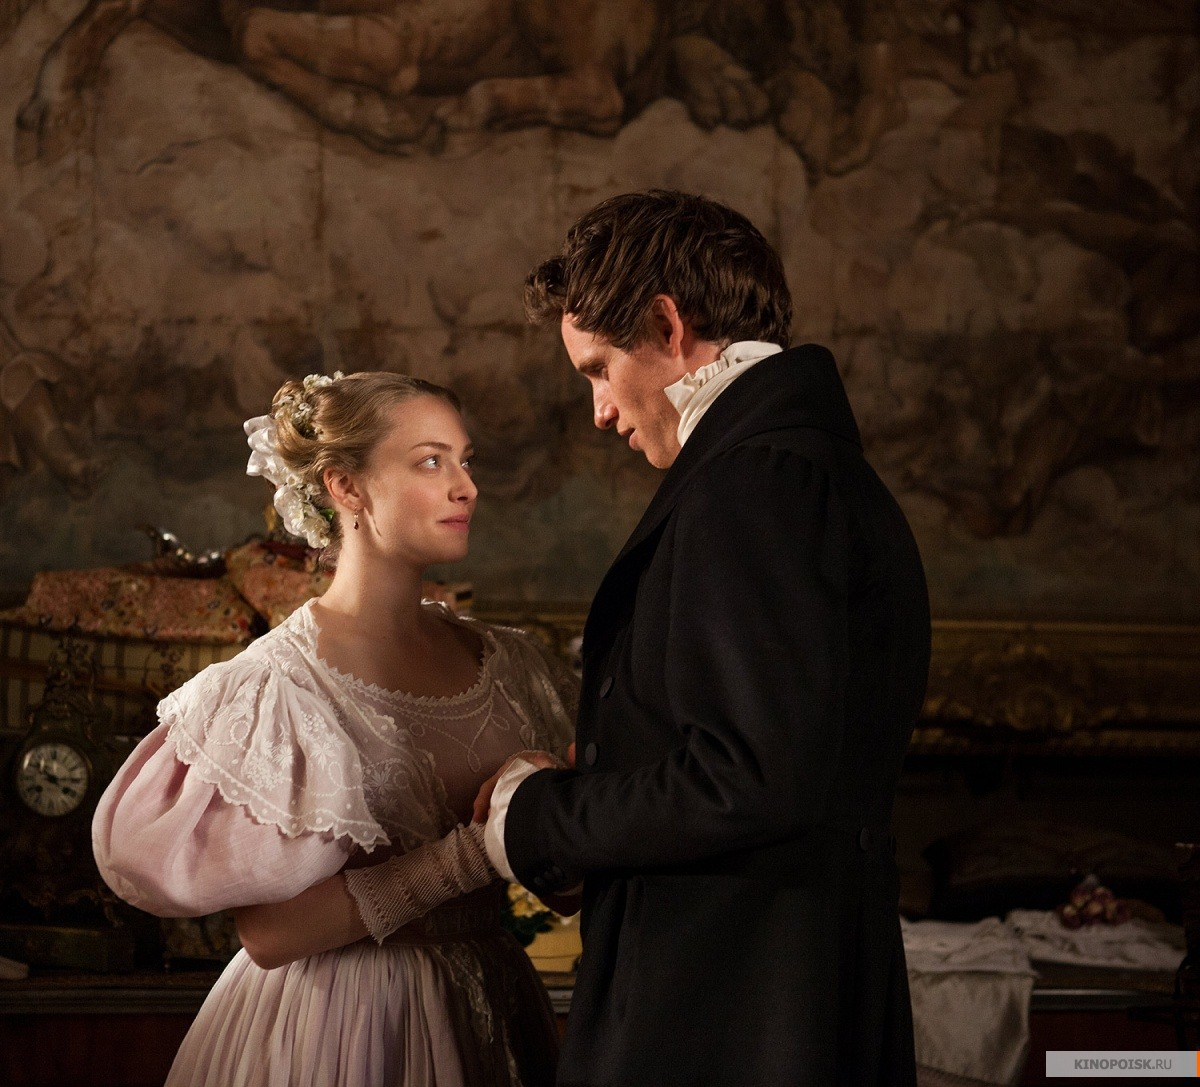 an evaluation of les miserables a musical drama film by tom hooper Nonetheless, considering the last off-stage version of les misérables was tom hooper's 2012 oscar-winning musical film, which starred hugh jackman, russell crowe, anne hathaway, eddie redmayne.